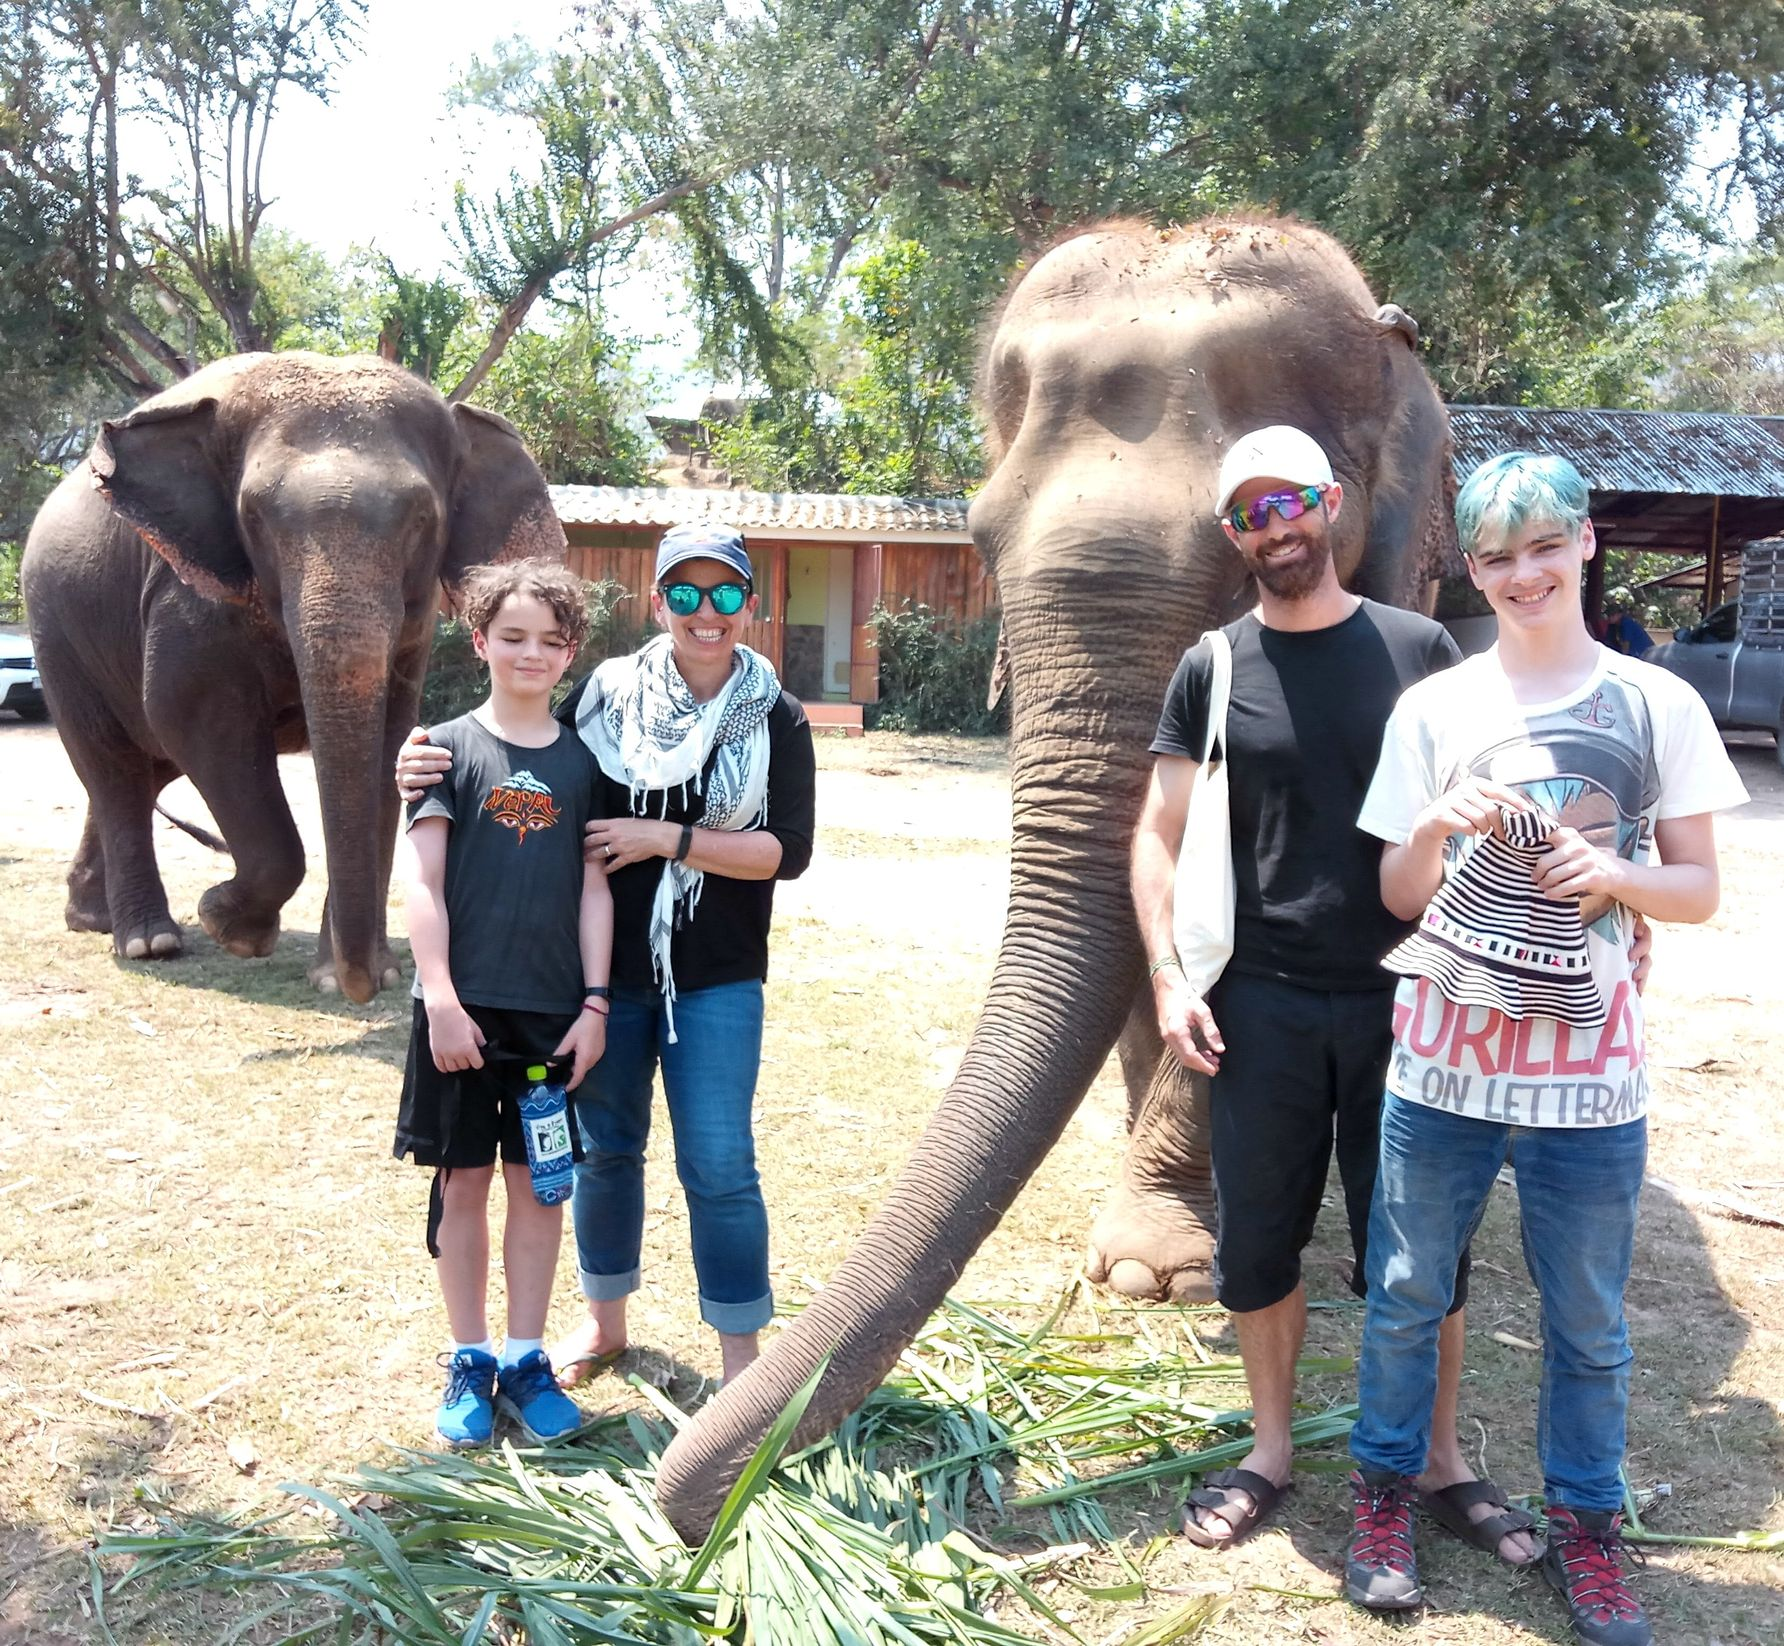 World Travel Family hanging out with elephants